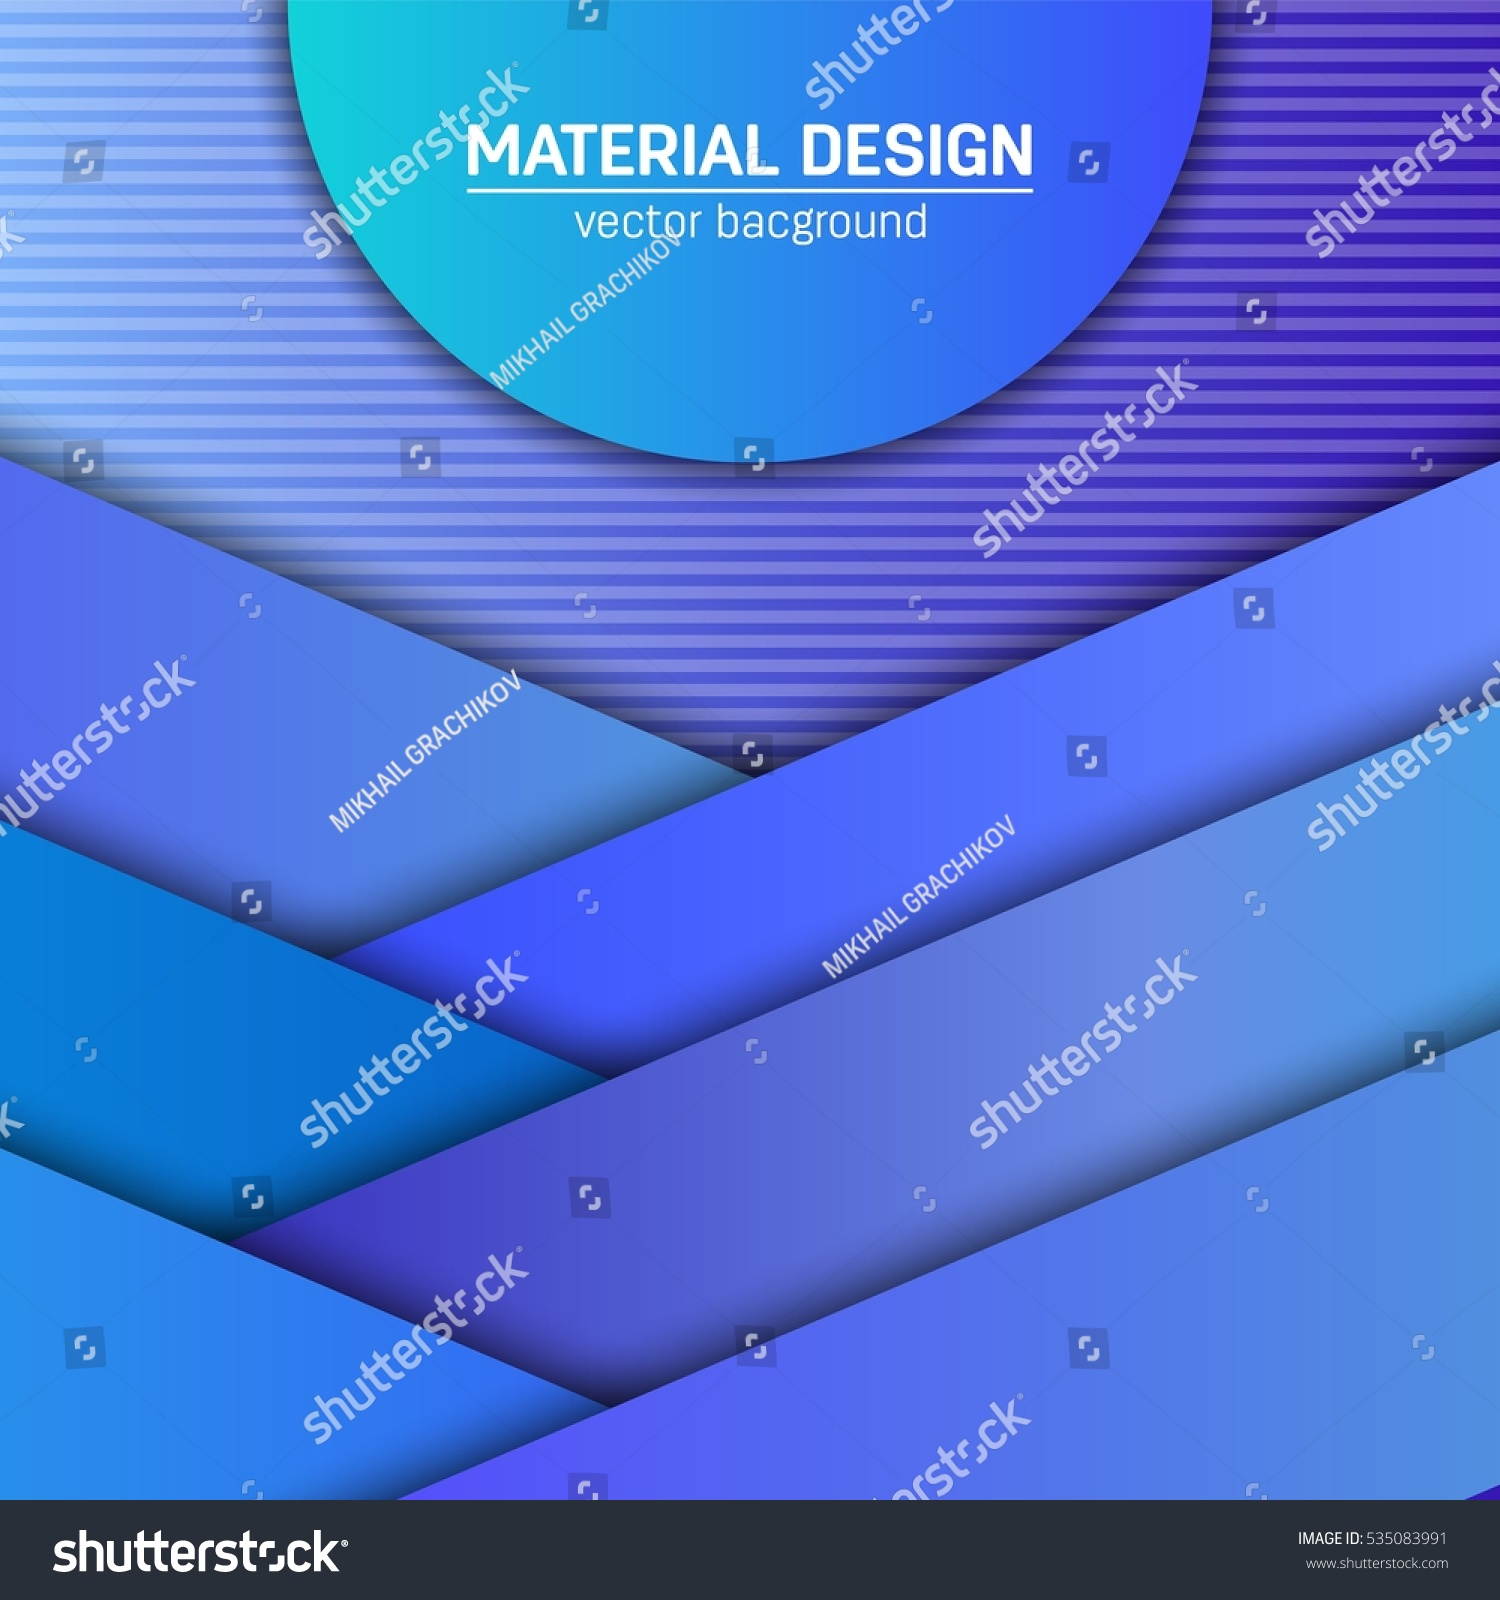 Vector material design background abstract creative stock vector abstract creative concept layout template for web and mobile app maxwellsz